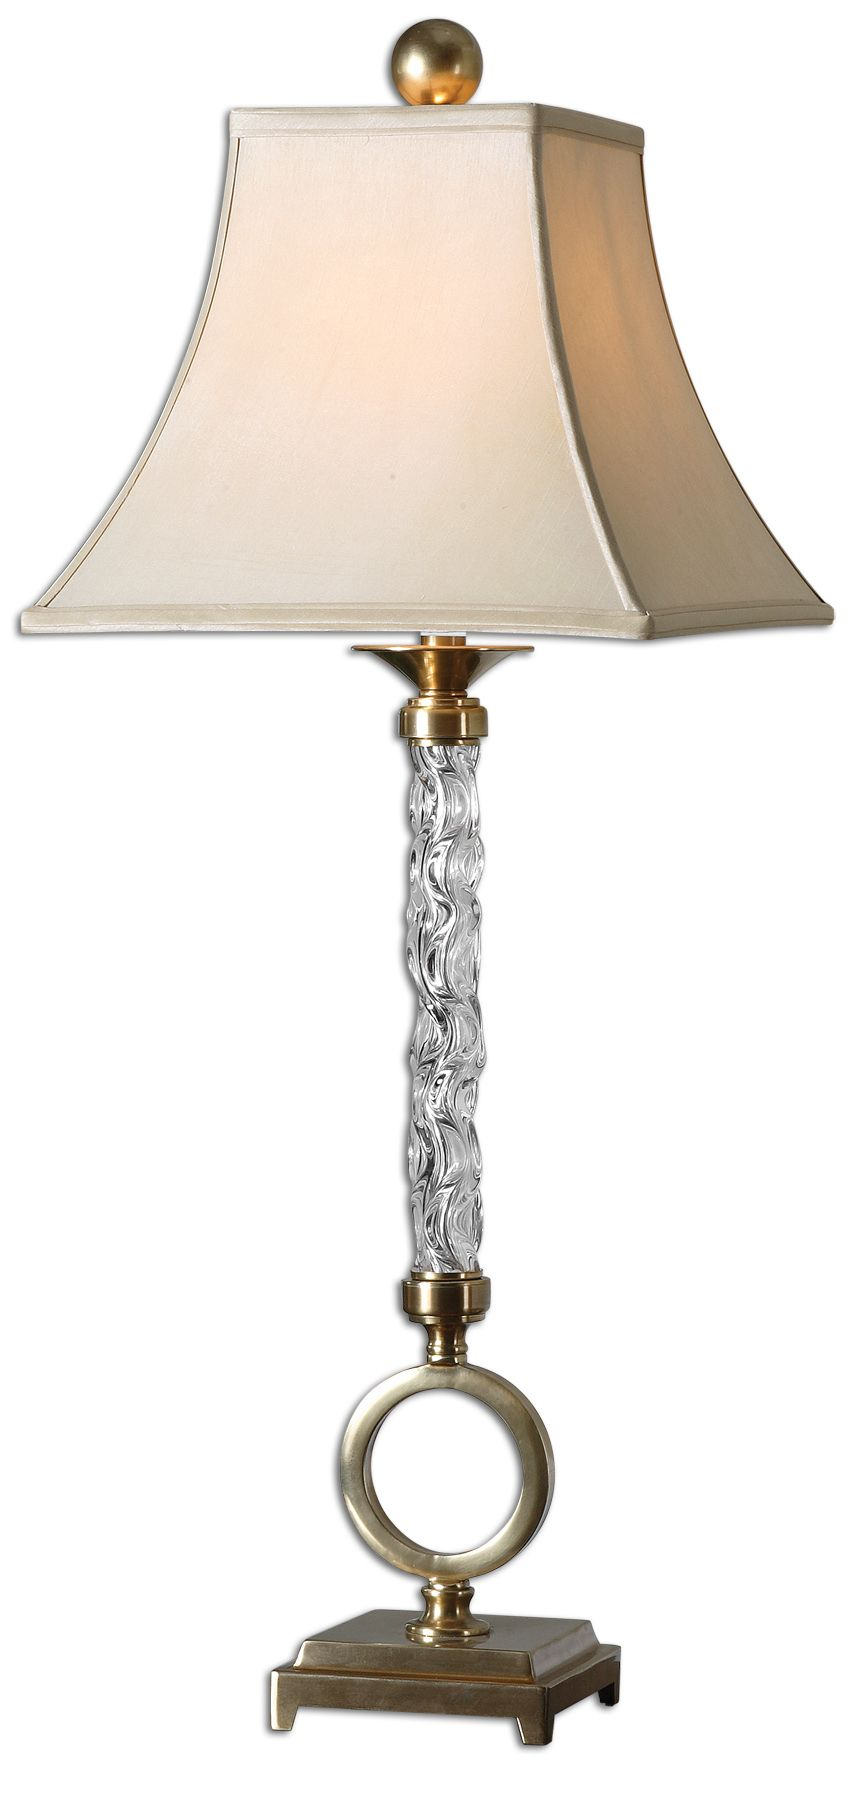 Uttermost 26858 Aversa Glass Table Lamp